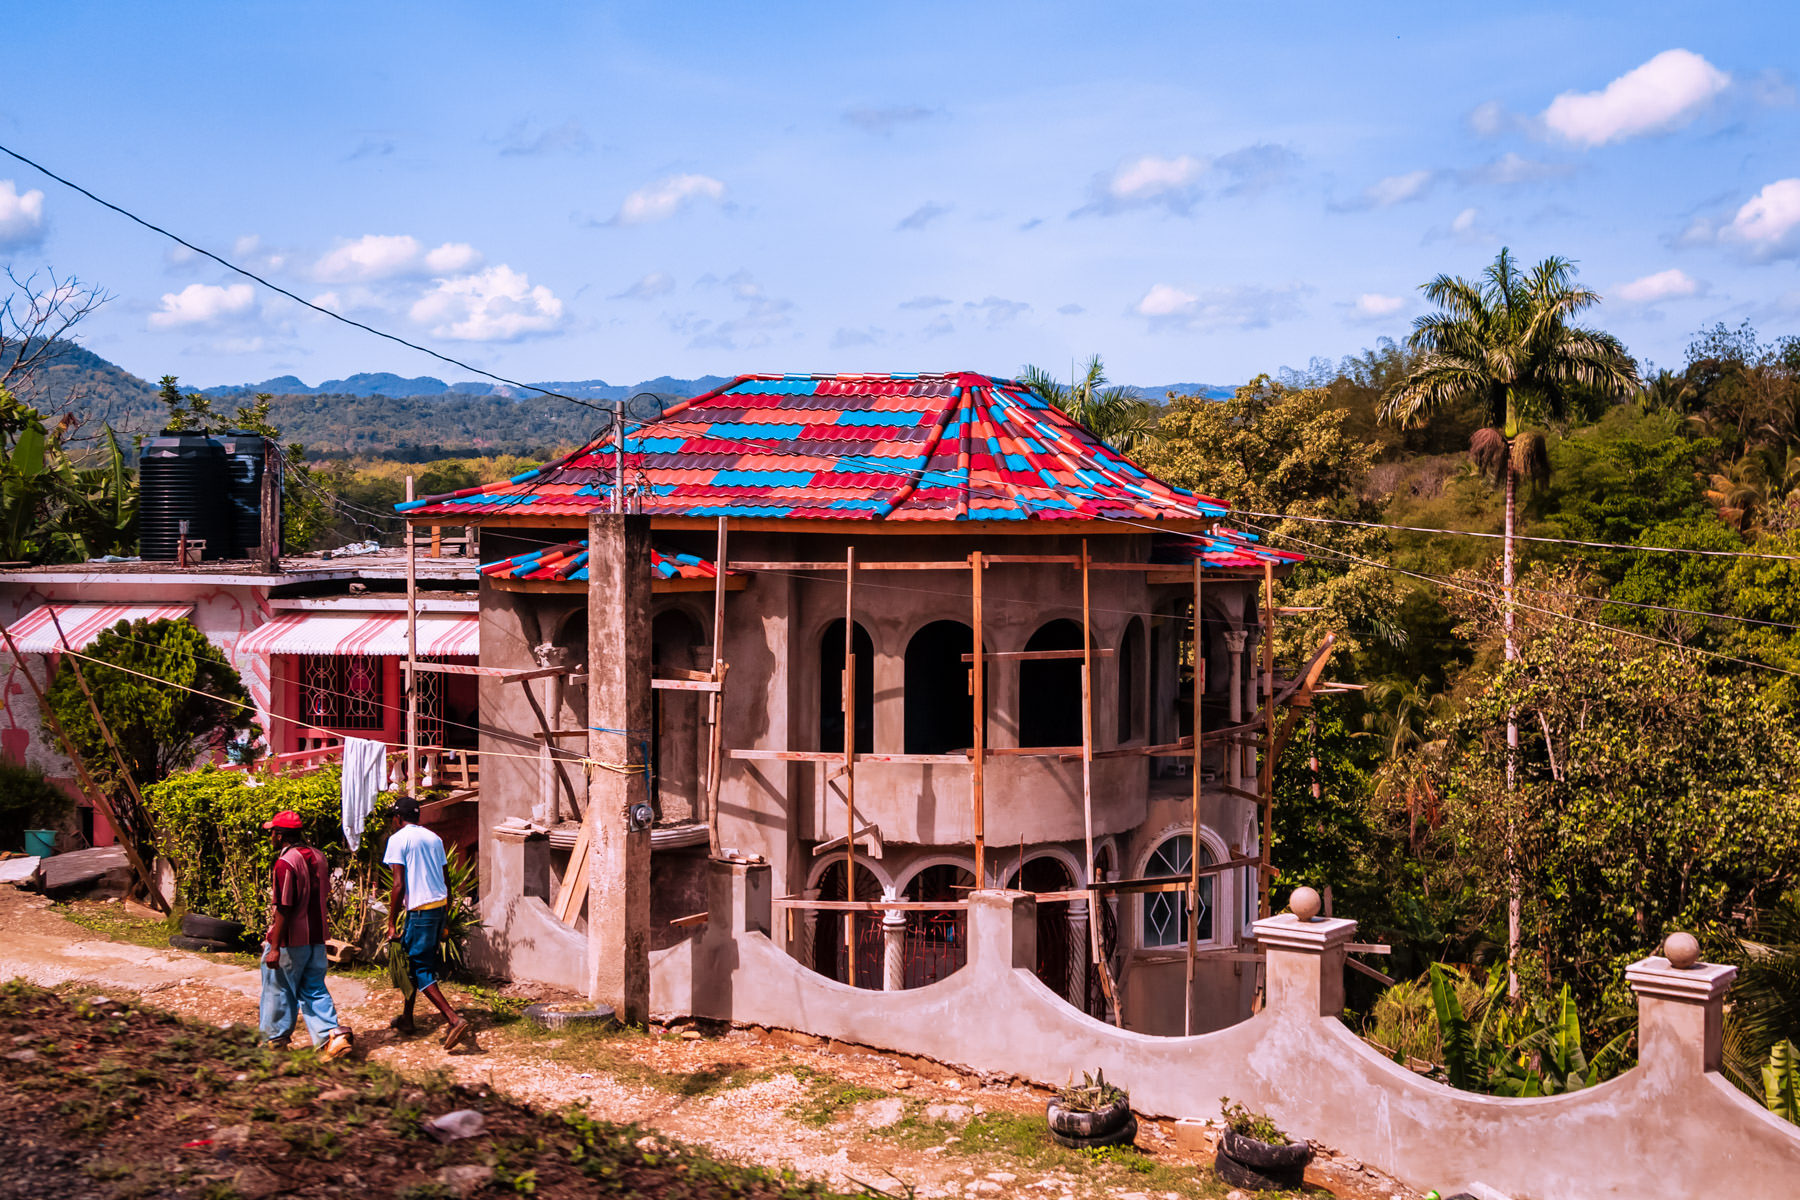 A house under construction amongst the forest and hills of Cambridge, Jamaica.